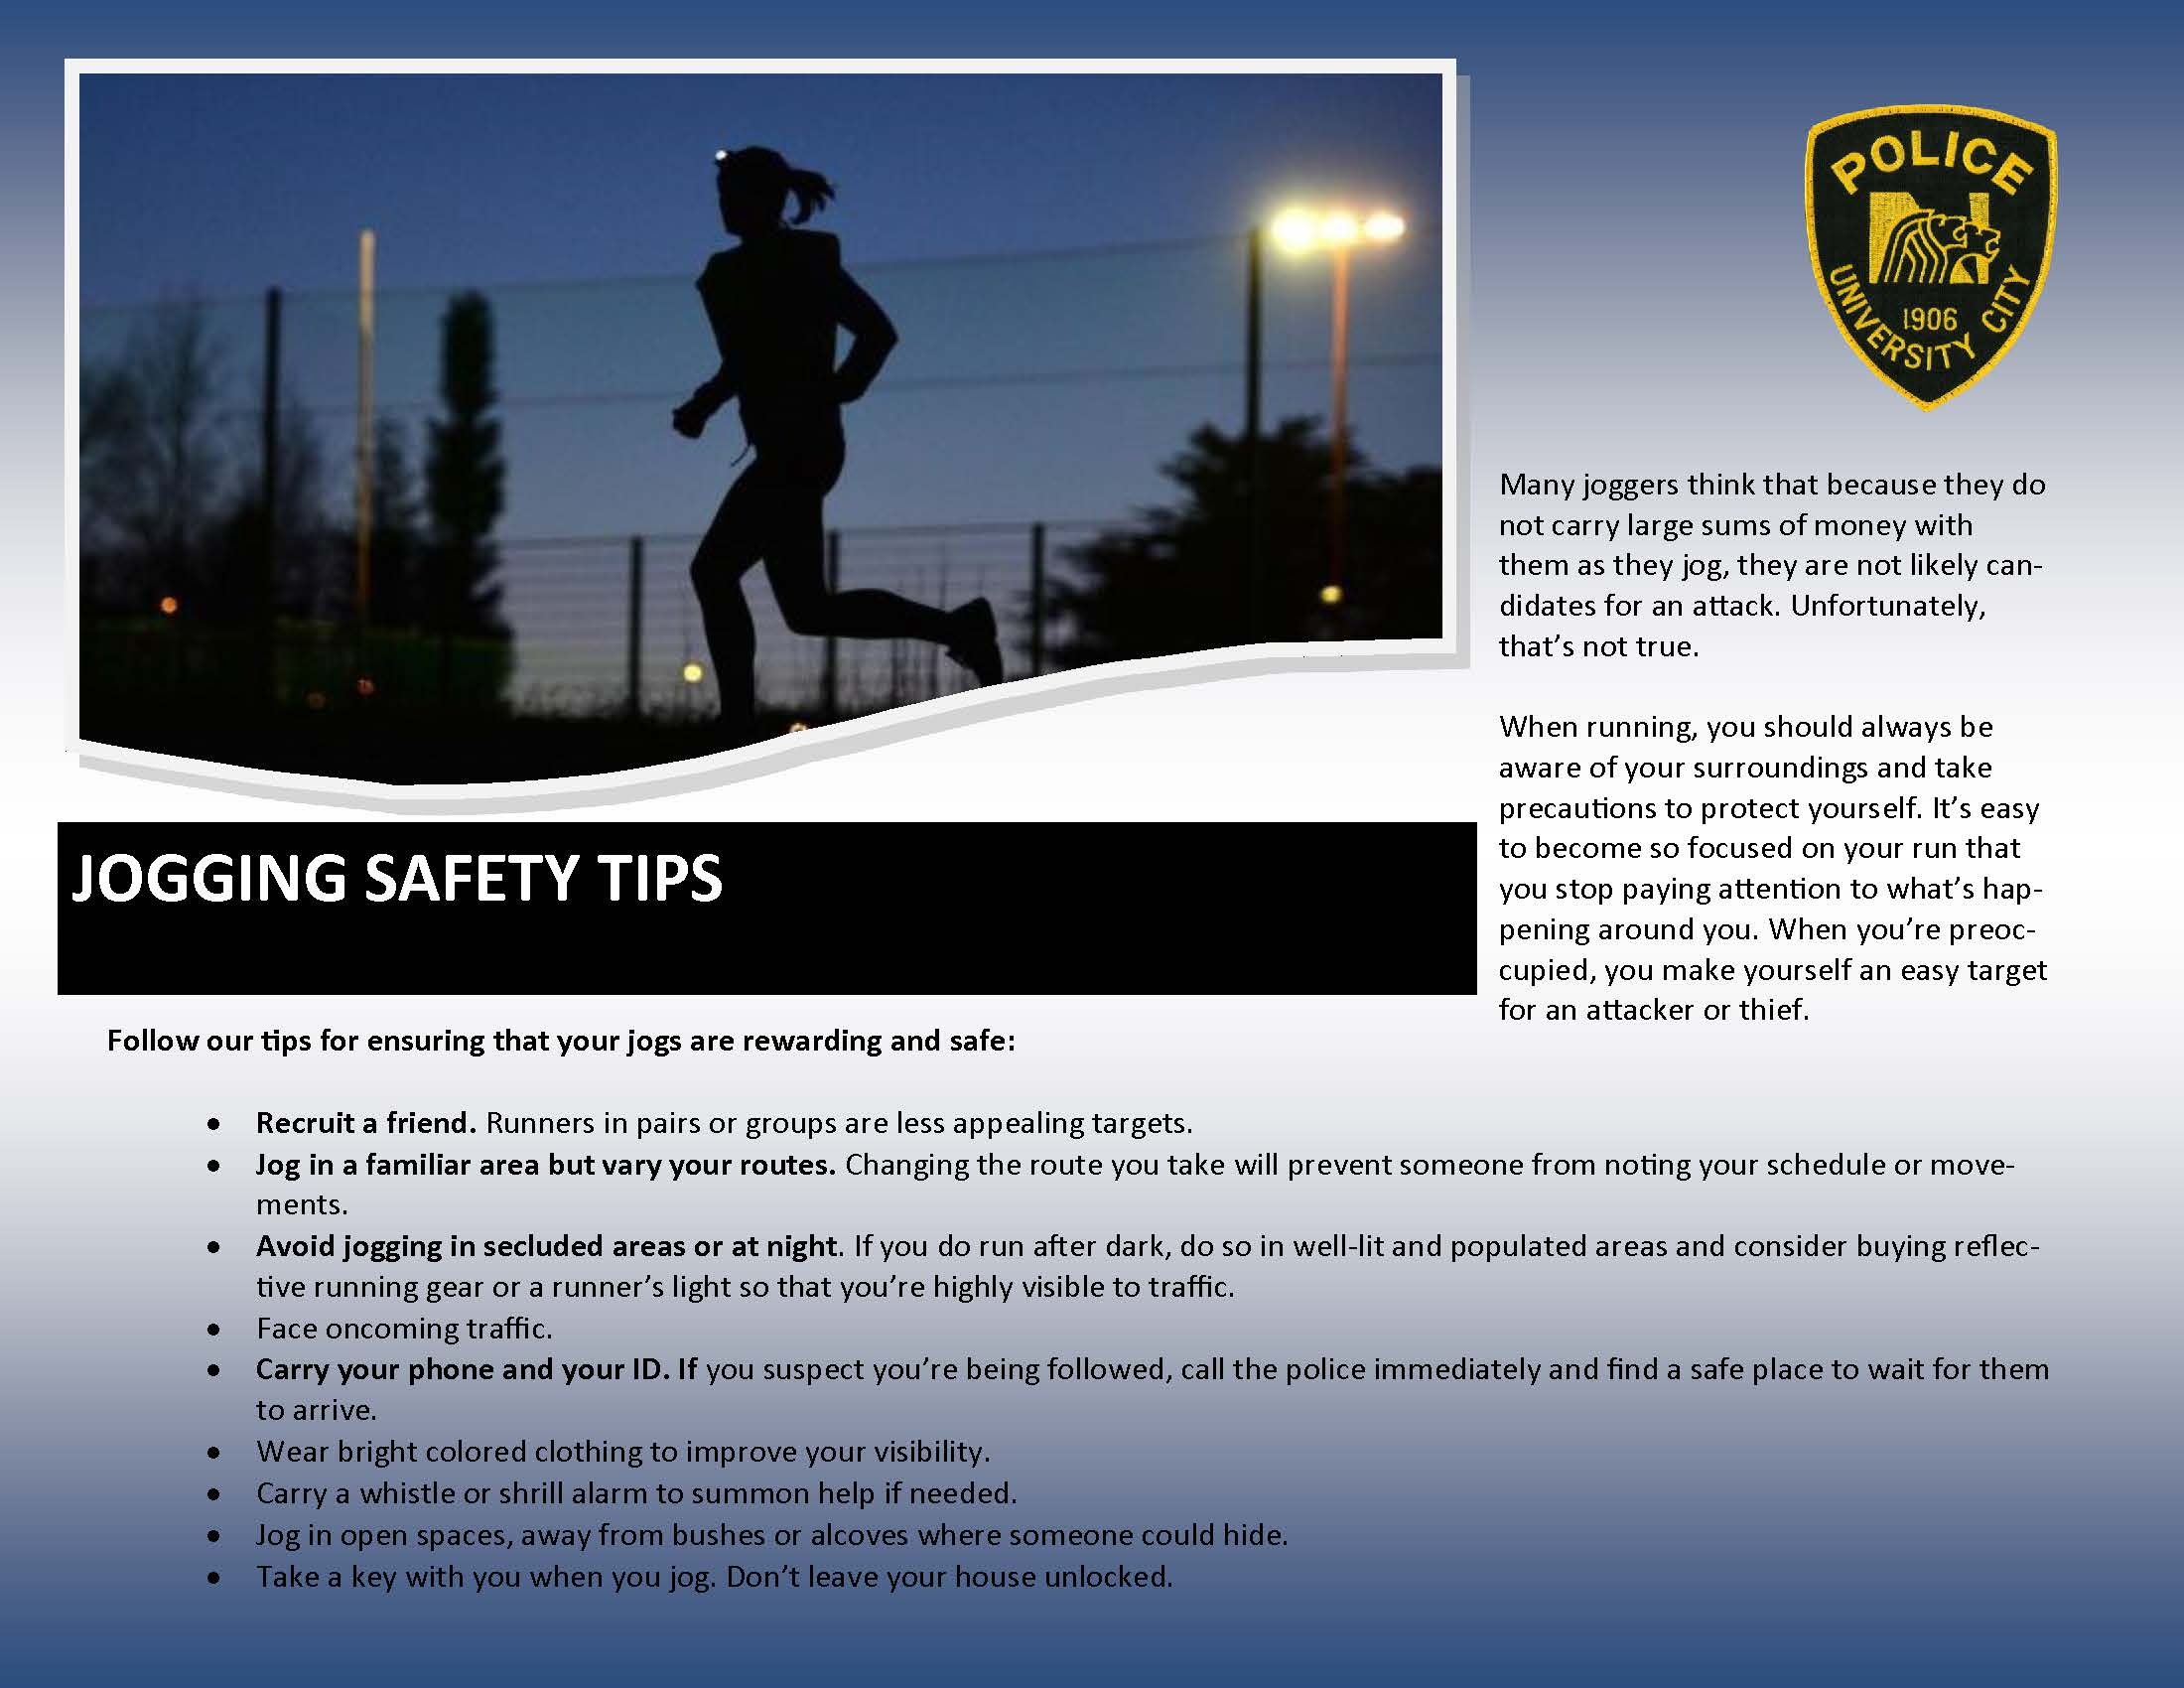 Jogging Safety Tips